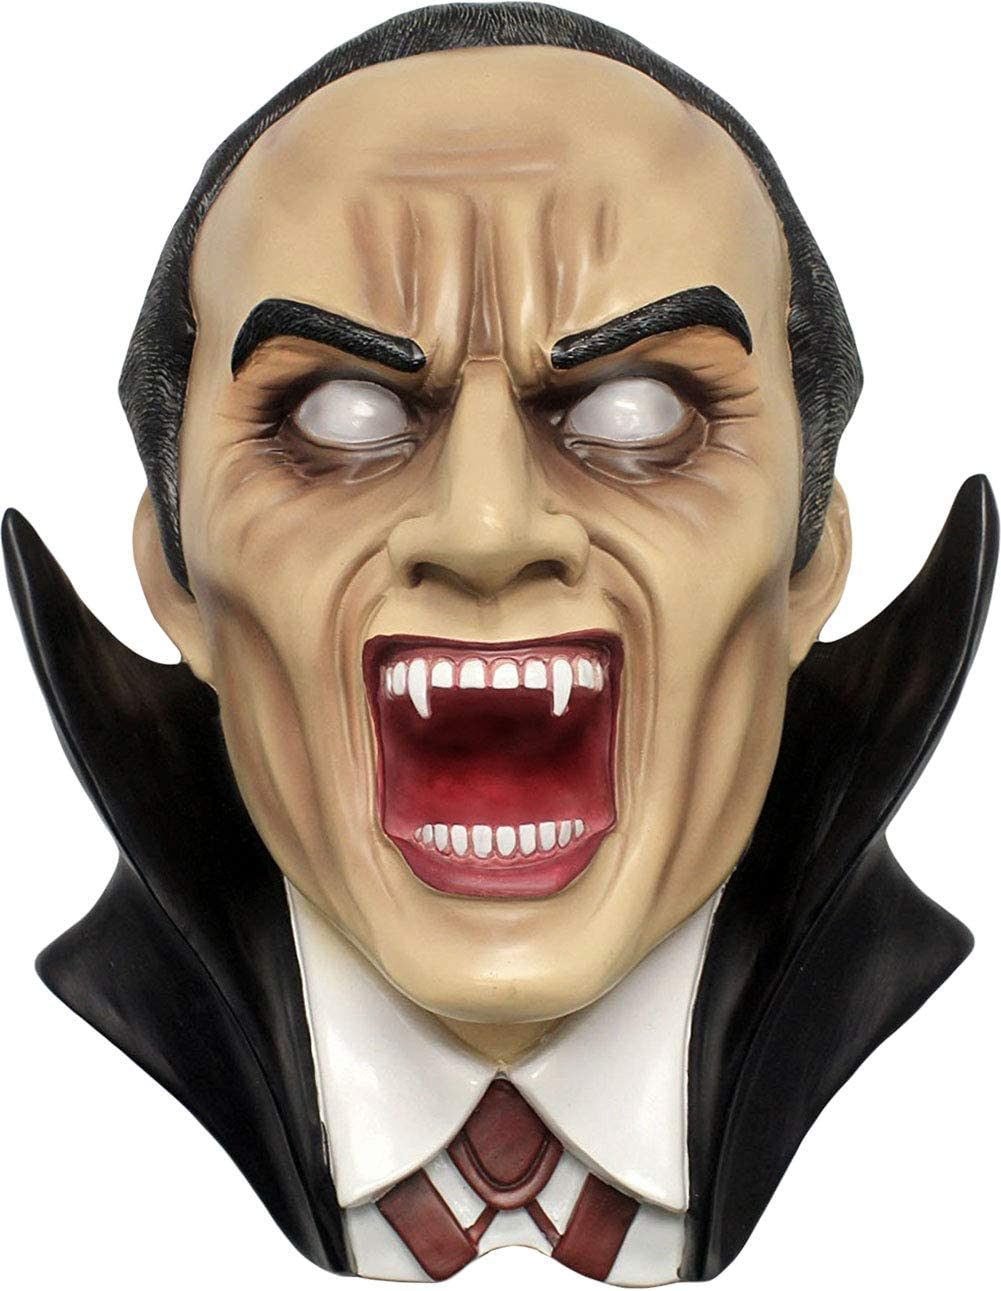 DWK – Dracul – Immortal Blood-Thirsty Vampire Wall Mounted Hanging Bust Sculpture Gothic Horror Classic Spooky Halloween Party Haunted House Home D cor Accent, 14-inch